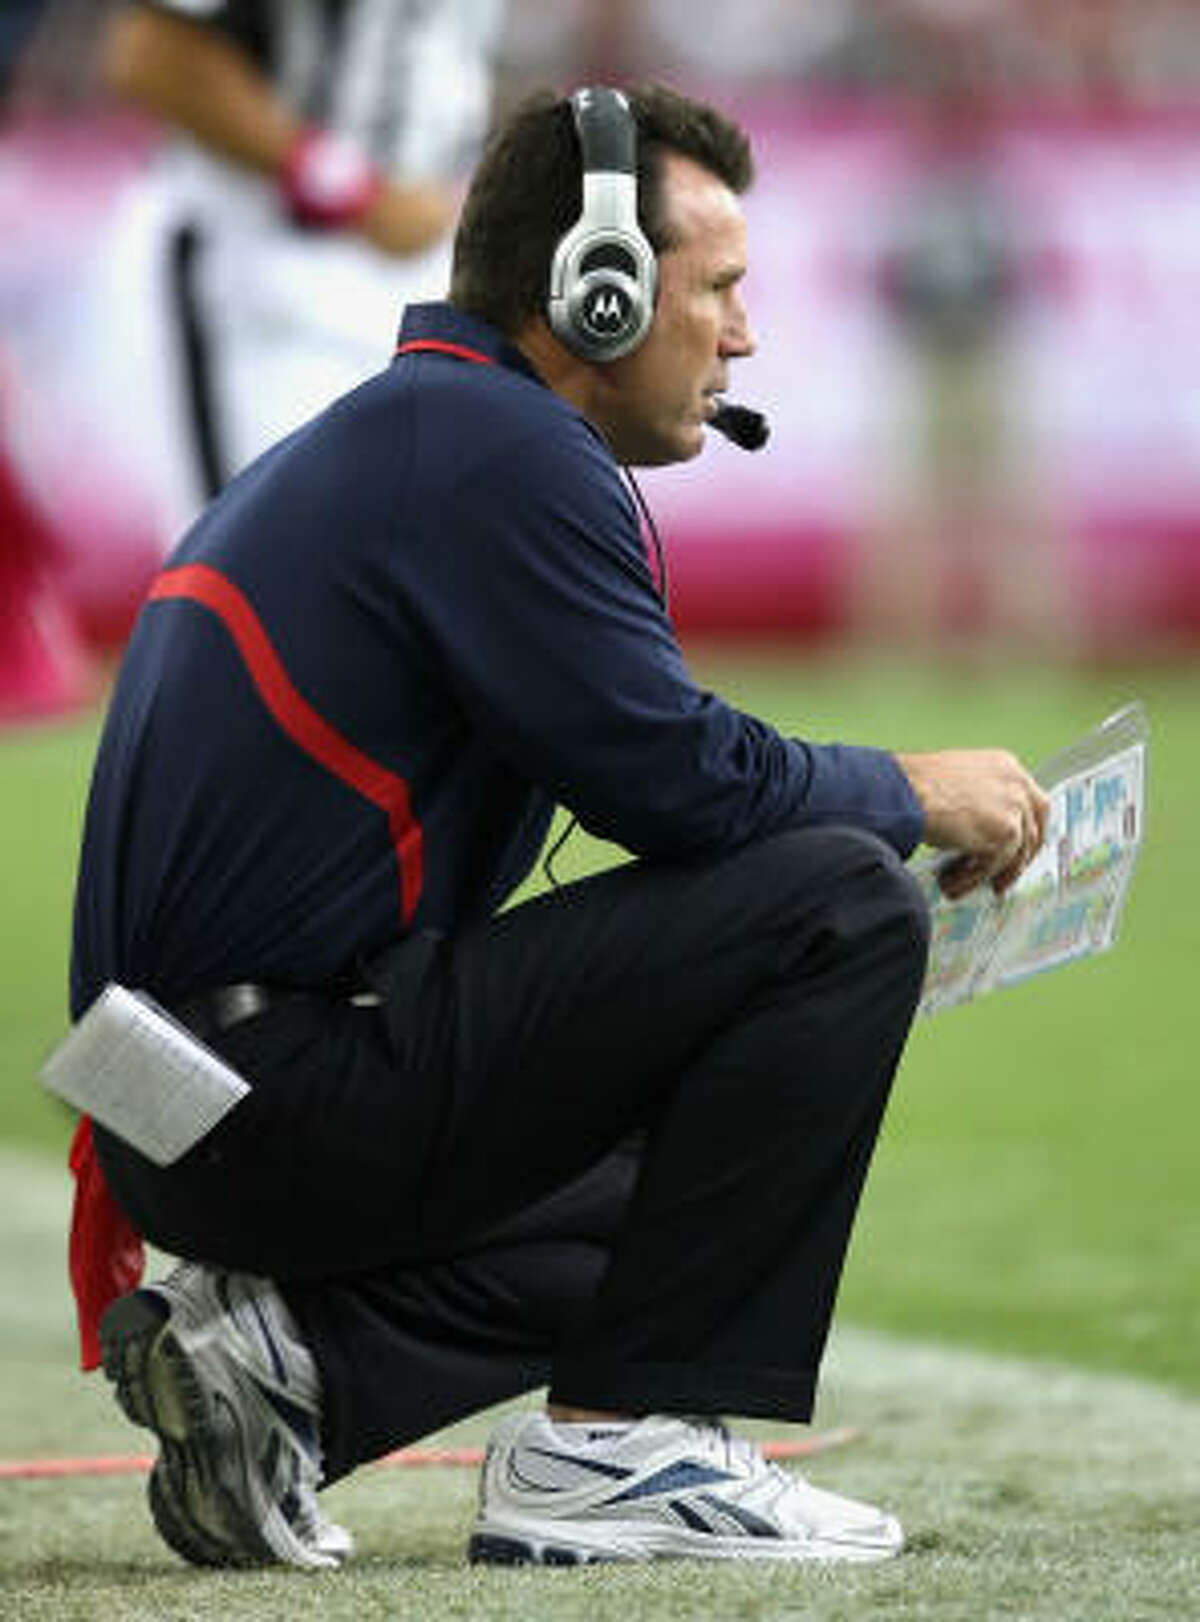 FALLING: Coach Gary Kubiak Let's take a moment to give Kubiak some credit for the Texans' second-half rally ... Moving on, the Texans have come out flat and looked uninspired at times this season. That falls on the coaching staff. If the Texans continue to struggle - and there's a chance with the tough part of the schedule yet to come - expect the calls to intensify for this to be Kubiak's fifth and final season with the Texans.